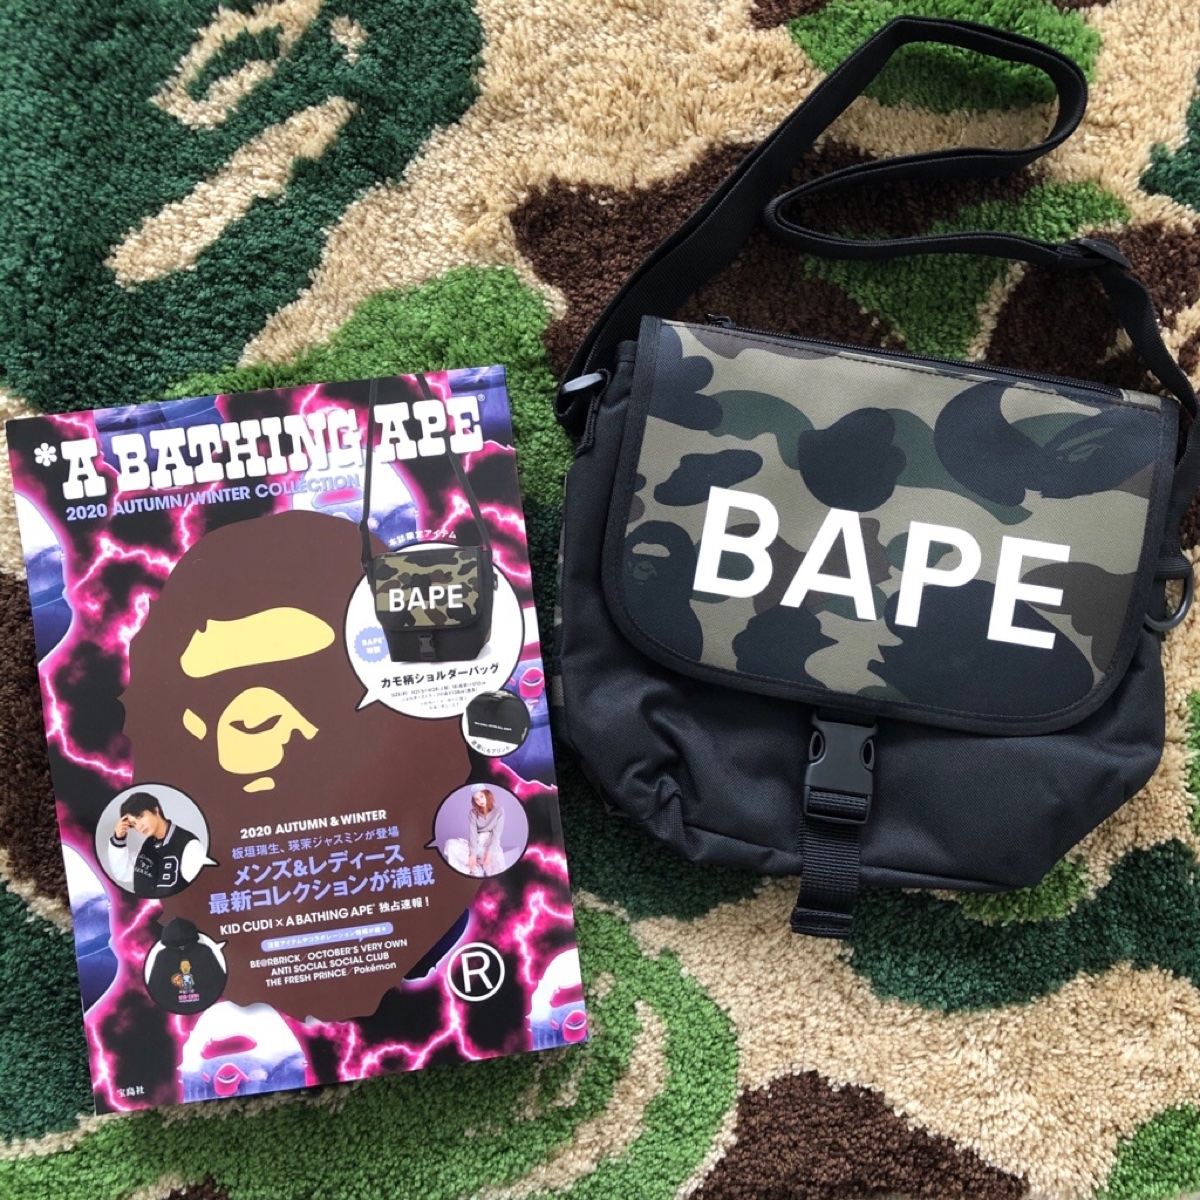 BAPE 1ST CAMO SHOULDER BAG One Size  100% Authentic Brand New Dead-stock In Original Packaging from BAPE JAPAN Will be shipped in 1-2 business days